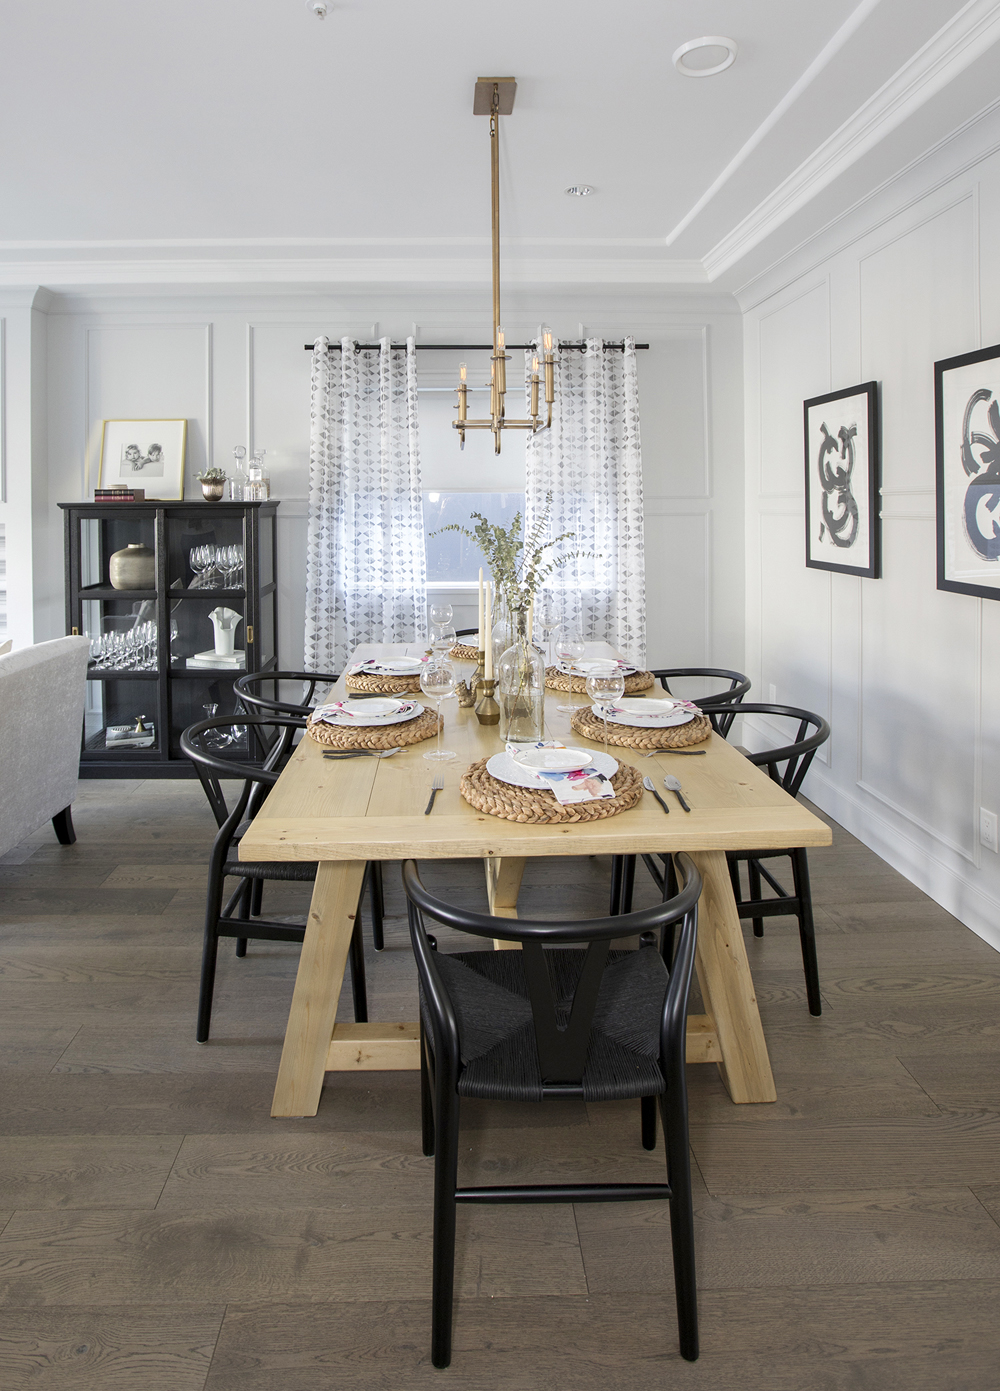 A close up of Elaina and Brian's newly renovated space after Jillian Harris has worked her magic. Featuring Metrie's Very Square Scene II baseboards. Image Source: HGTV Canada.